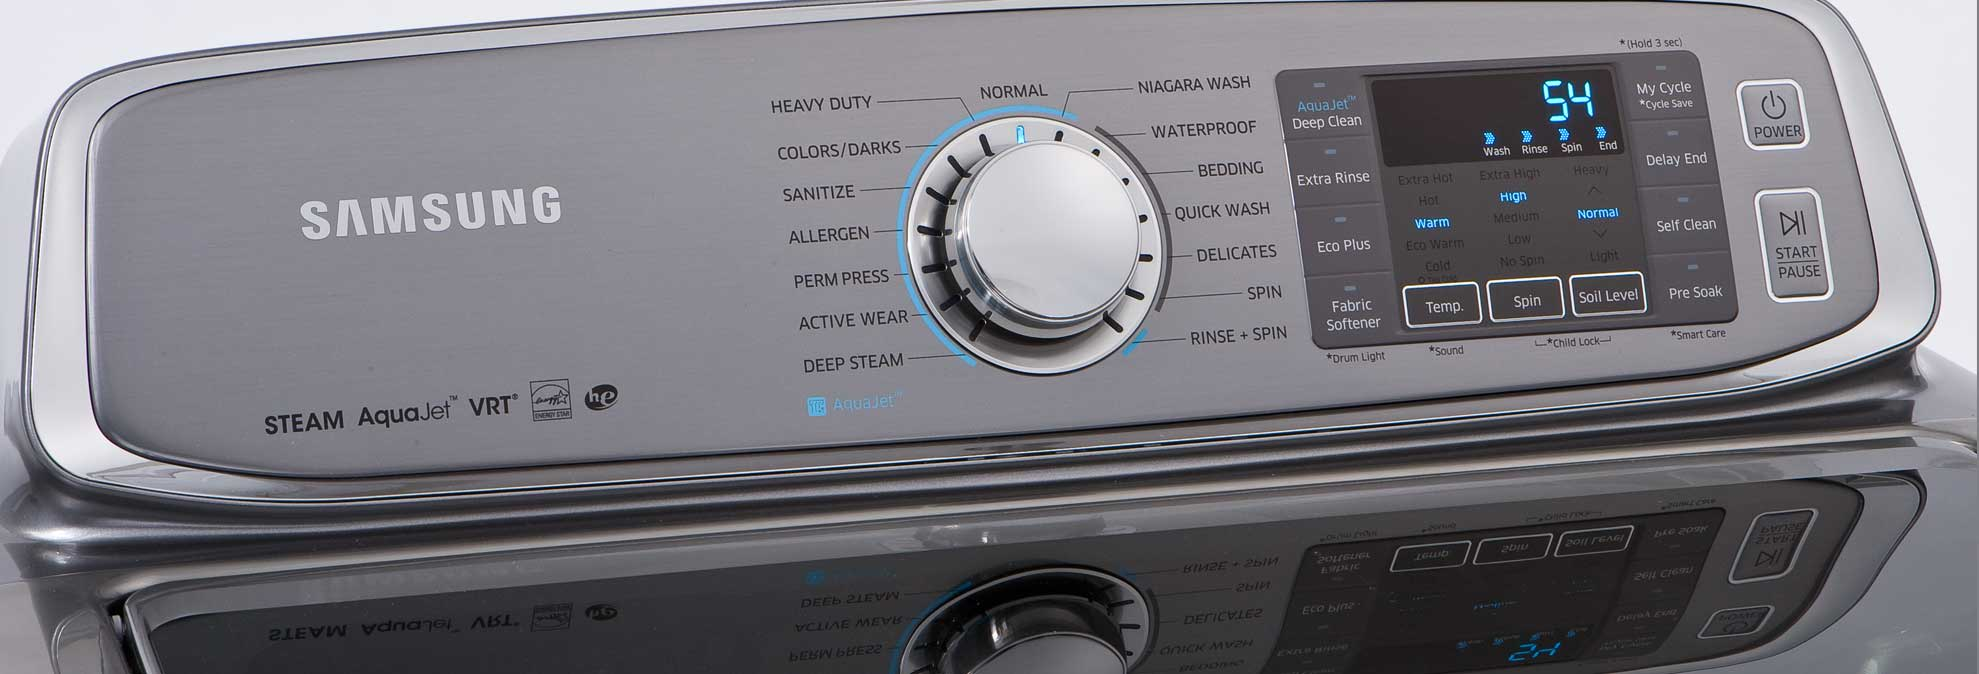 Reports of Samsung Washers 'Exploding' Prompts Company to Issue